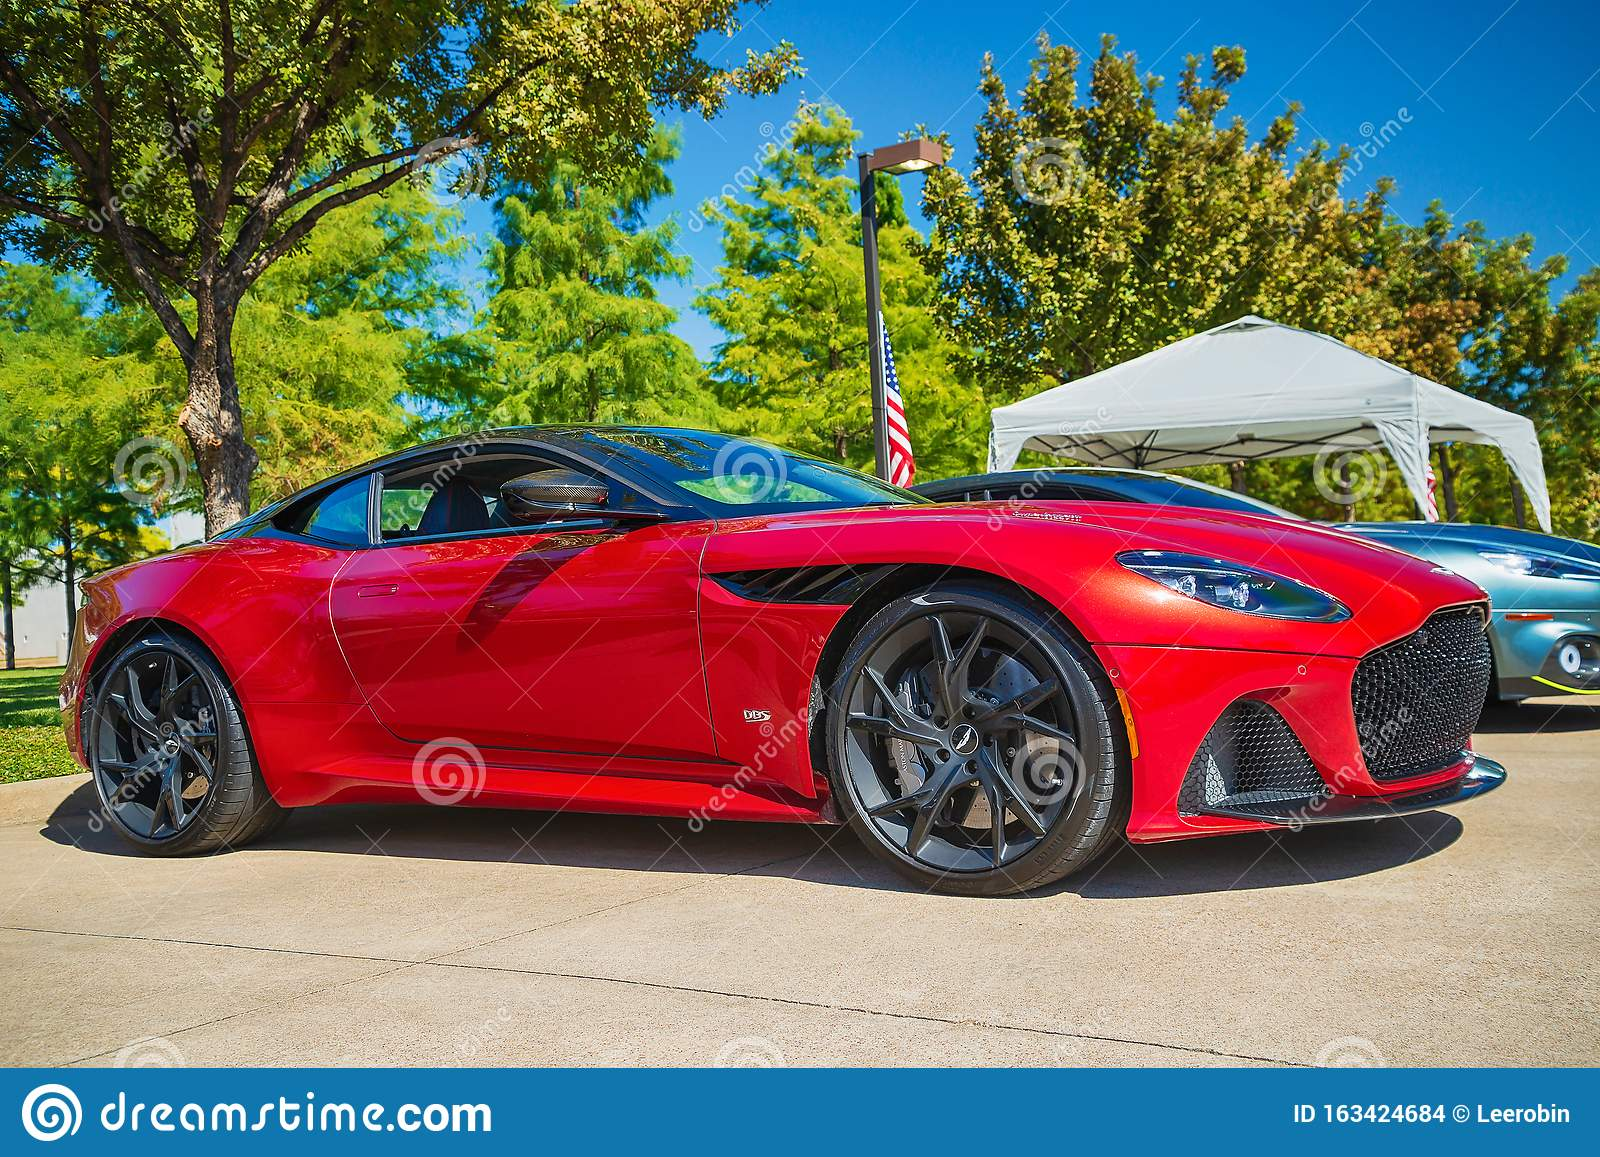 Red Aston Martin Dbs Superleggera Sports Car Editorial Stock Image Image Of Aston High 163424684